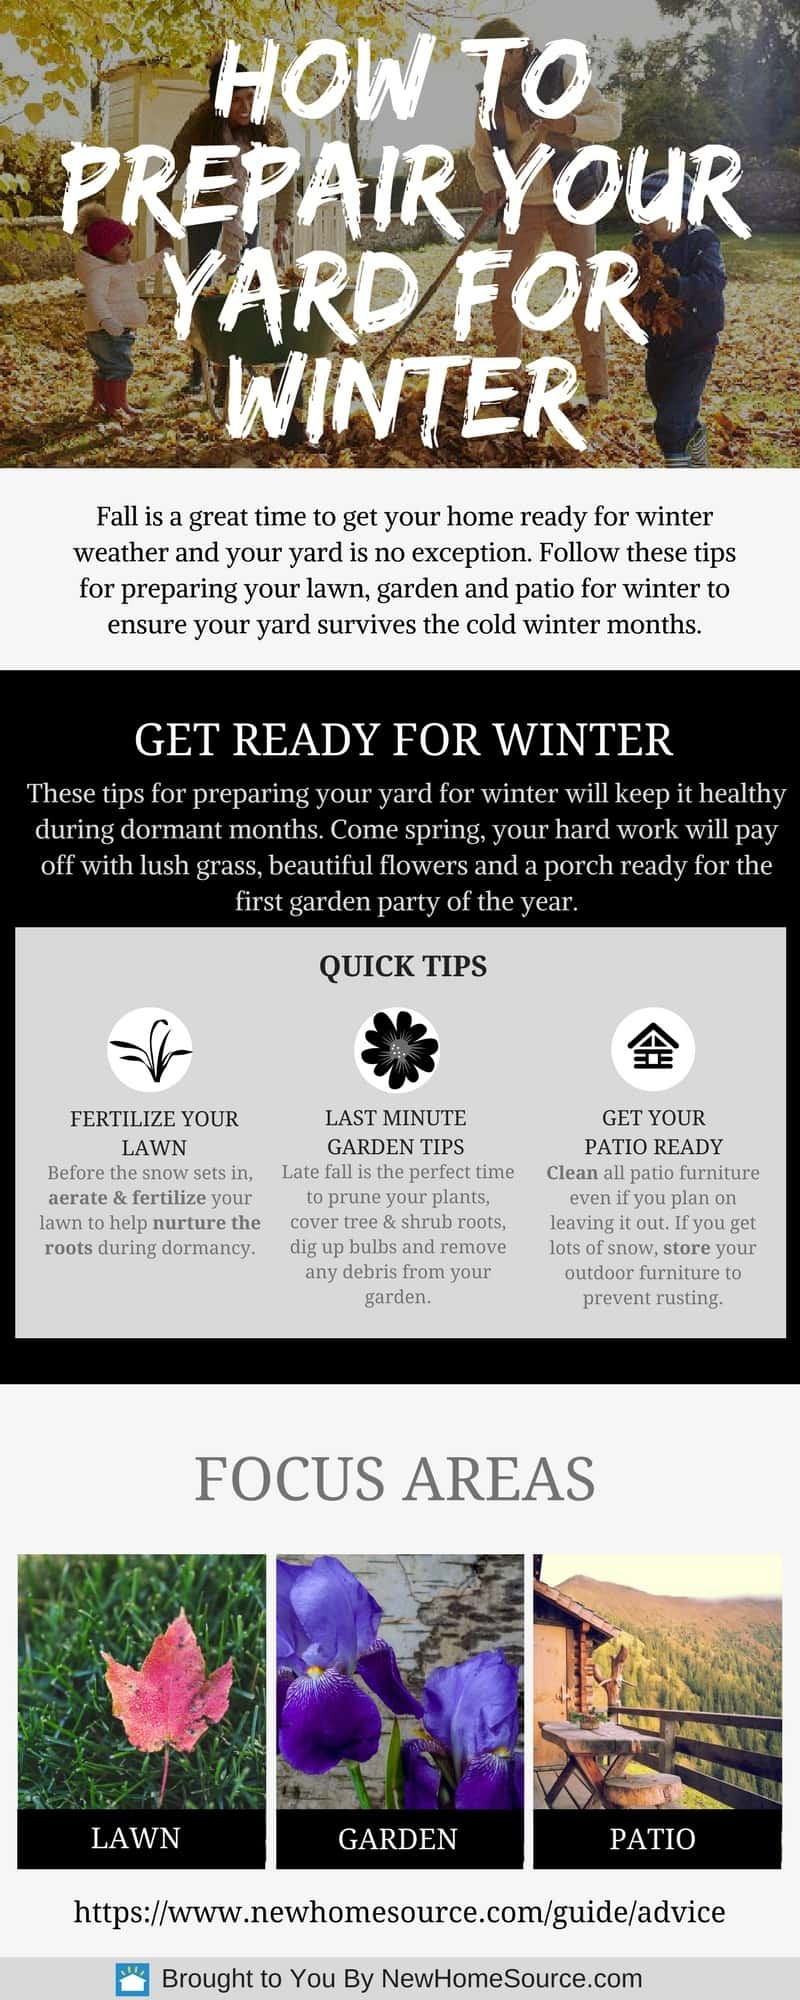 Infographic with quick tips on preparing your lawn for the winter.